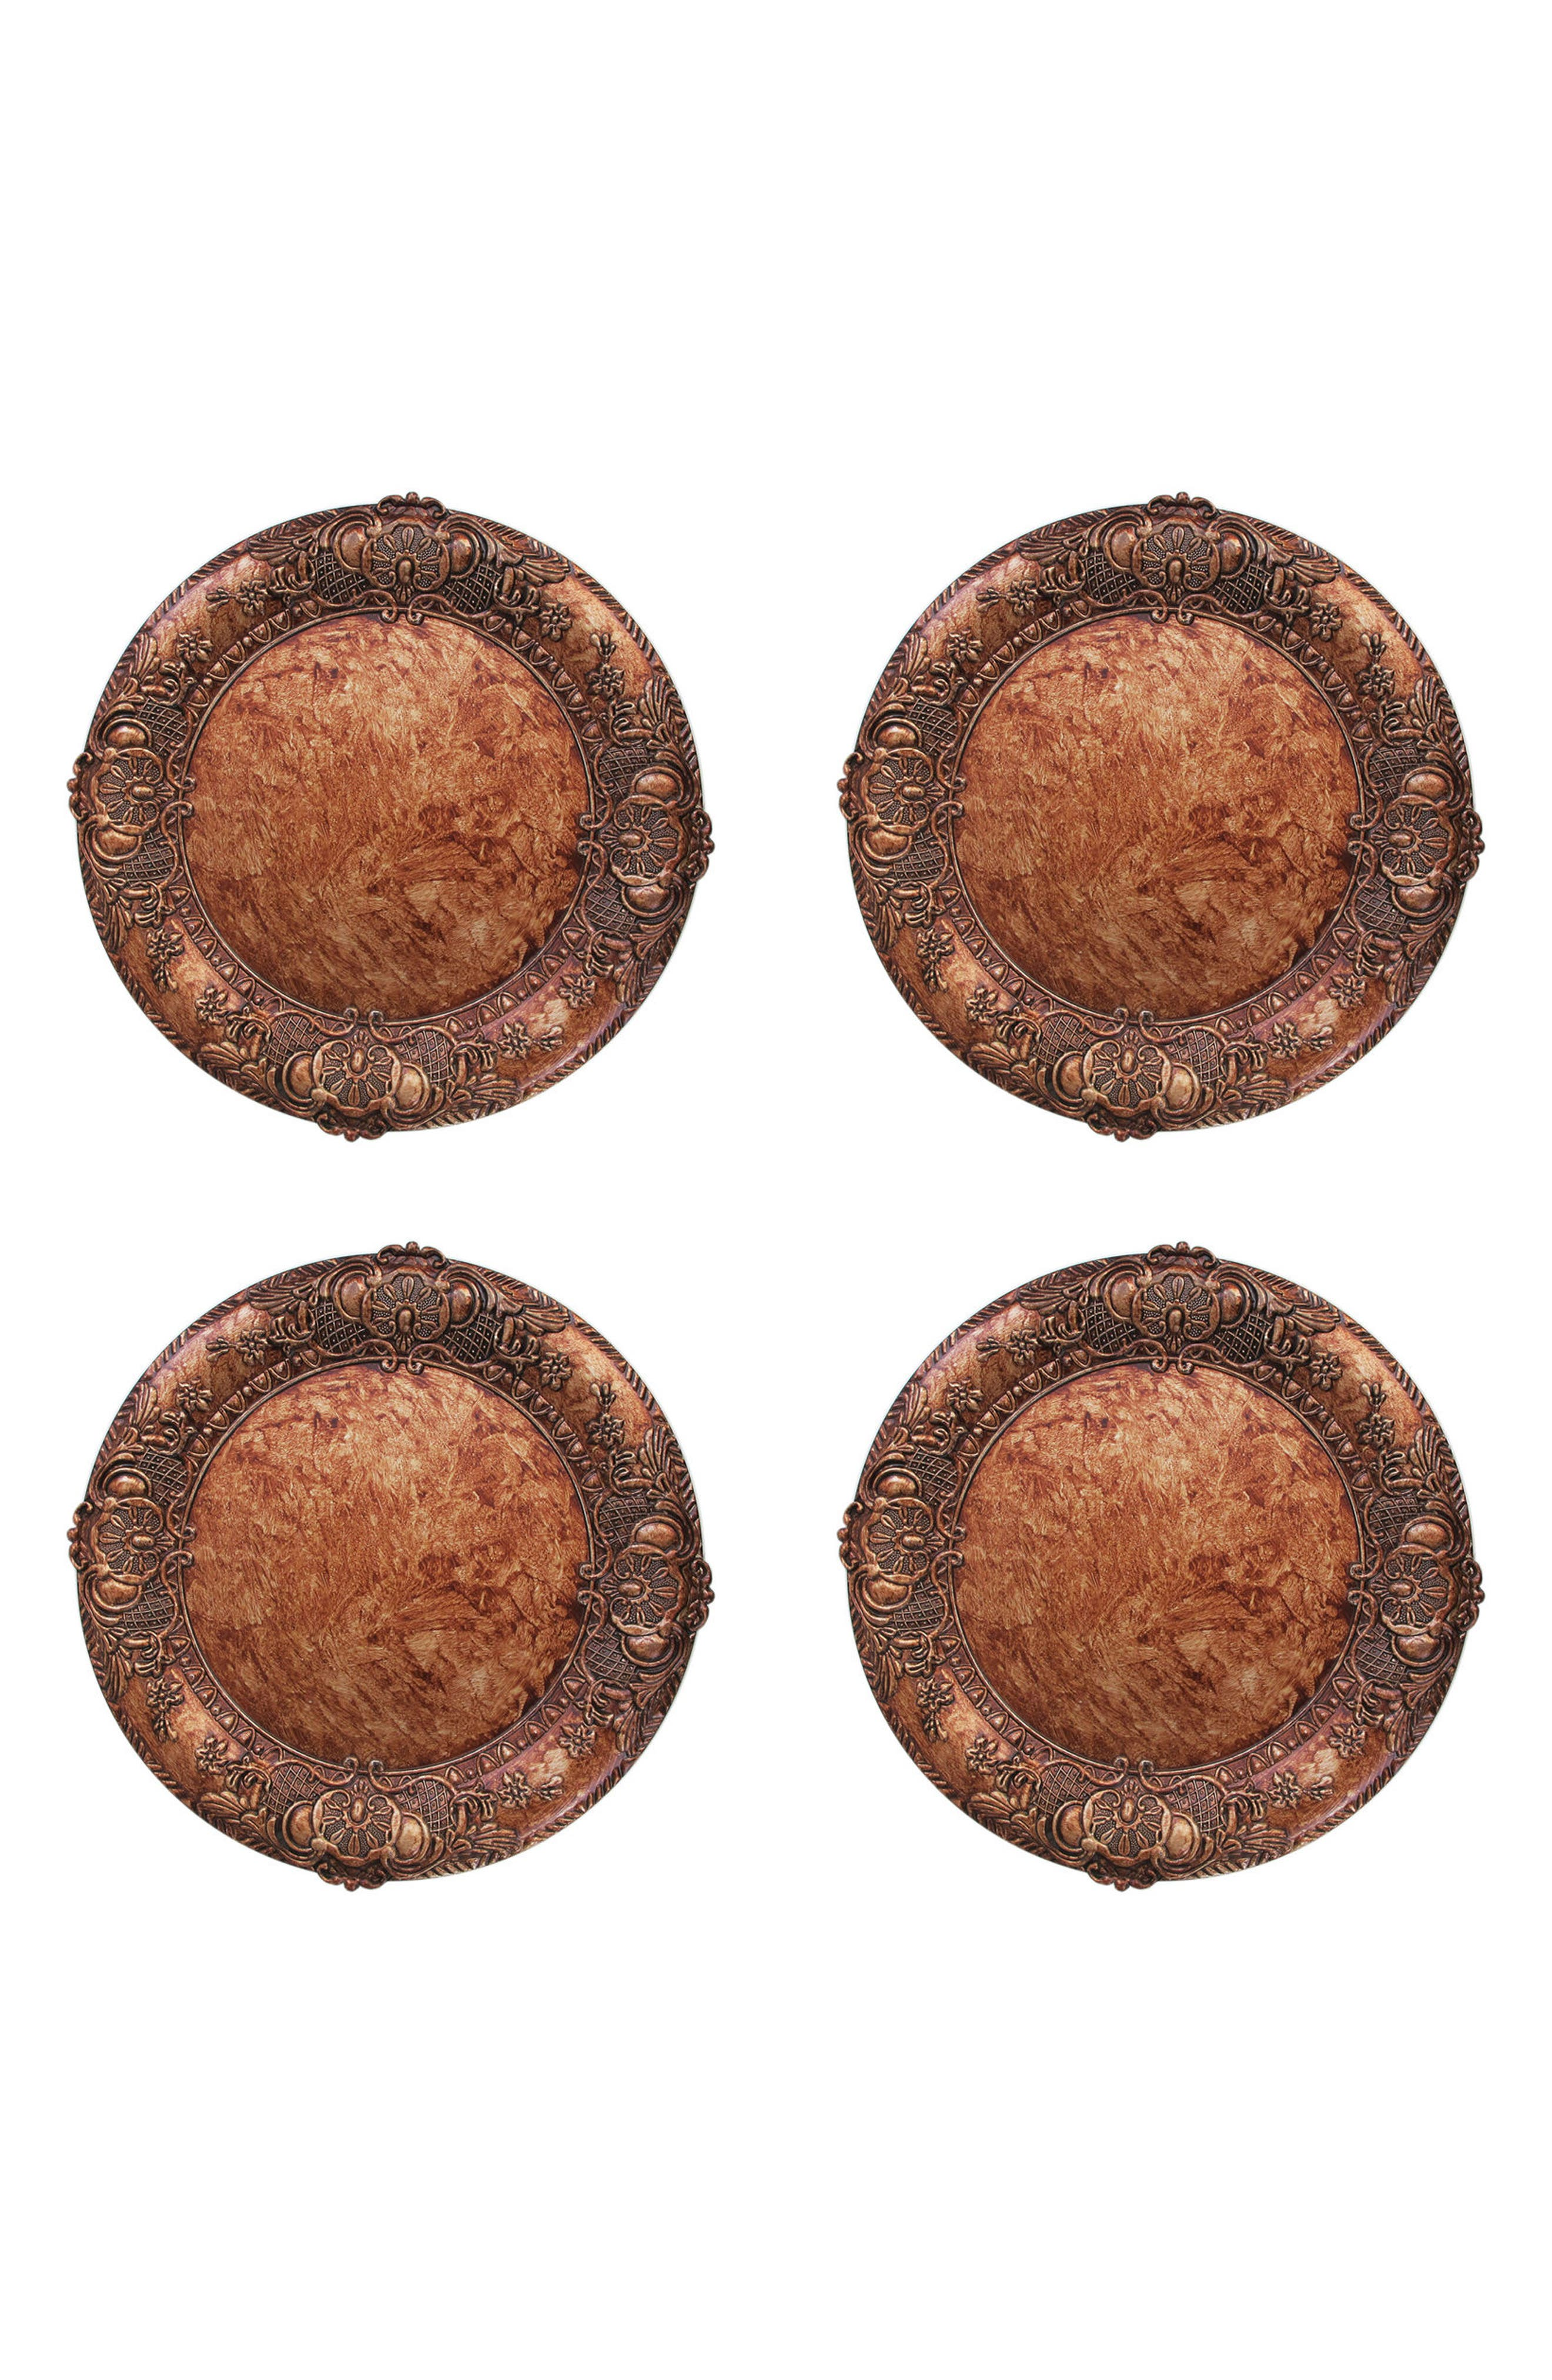 Alternate Image 1 Selected - American Atelier Set of 4 Embossed Charger Plates